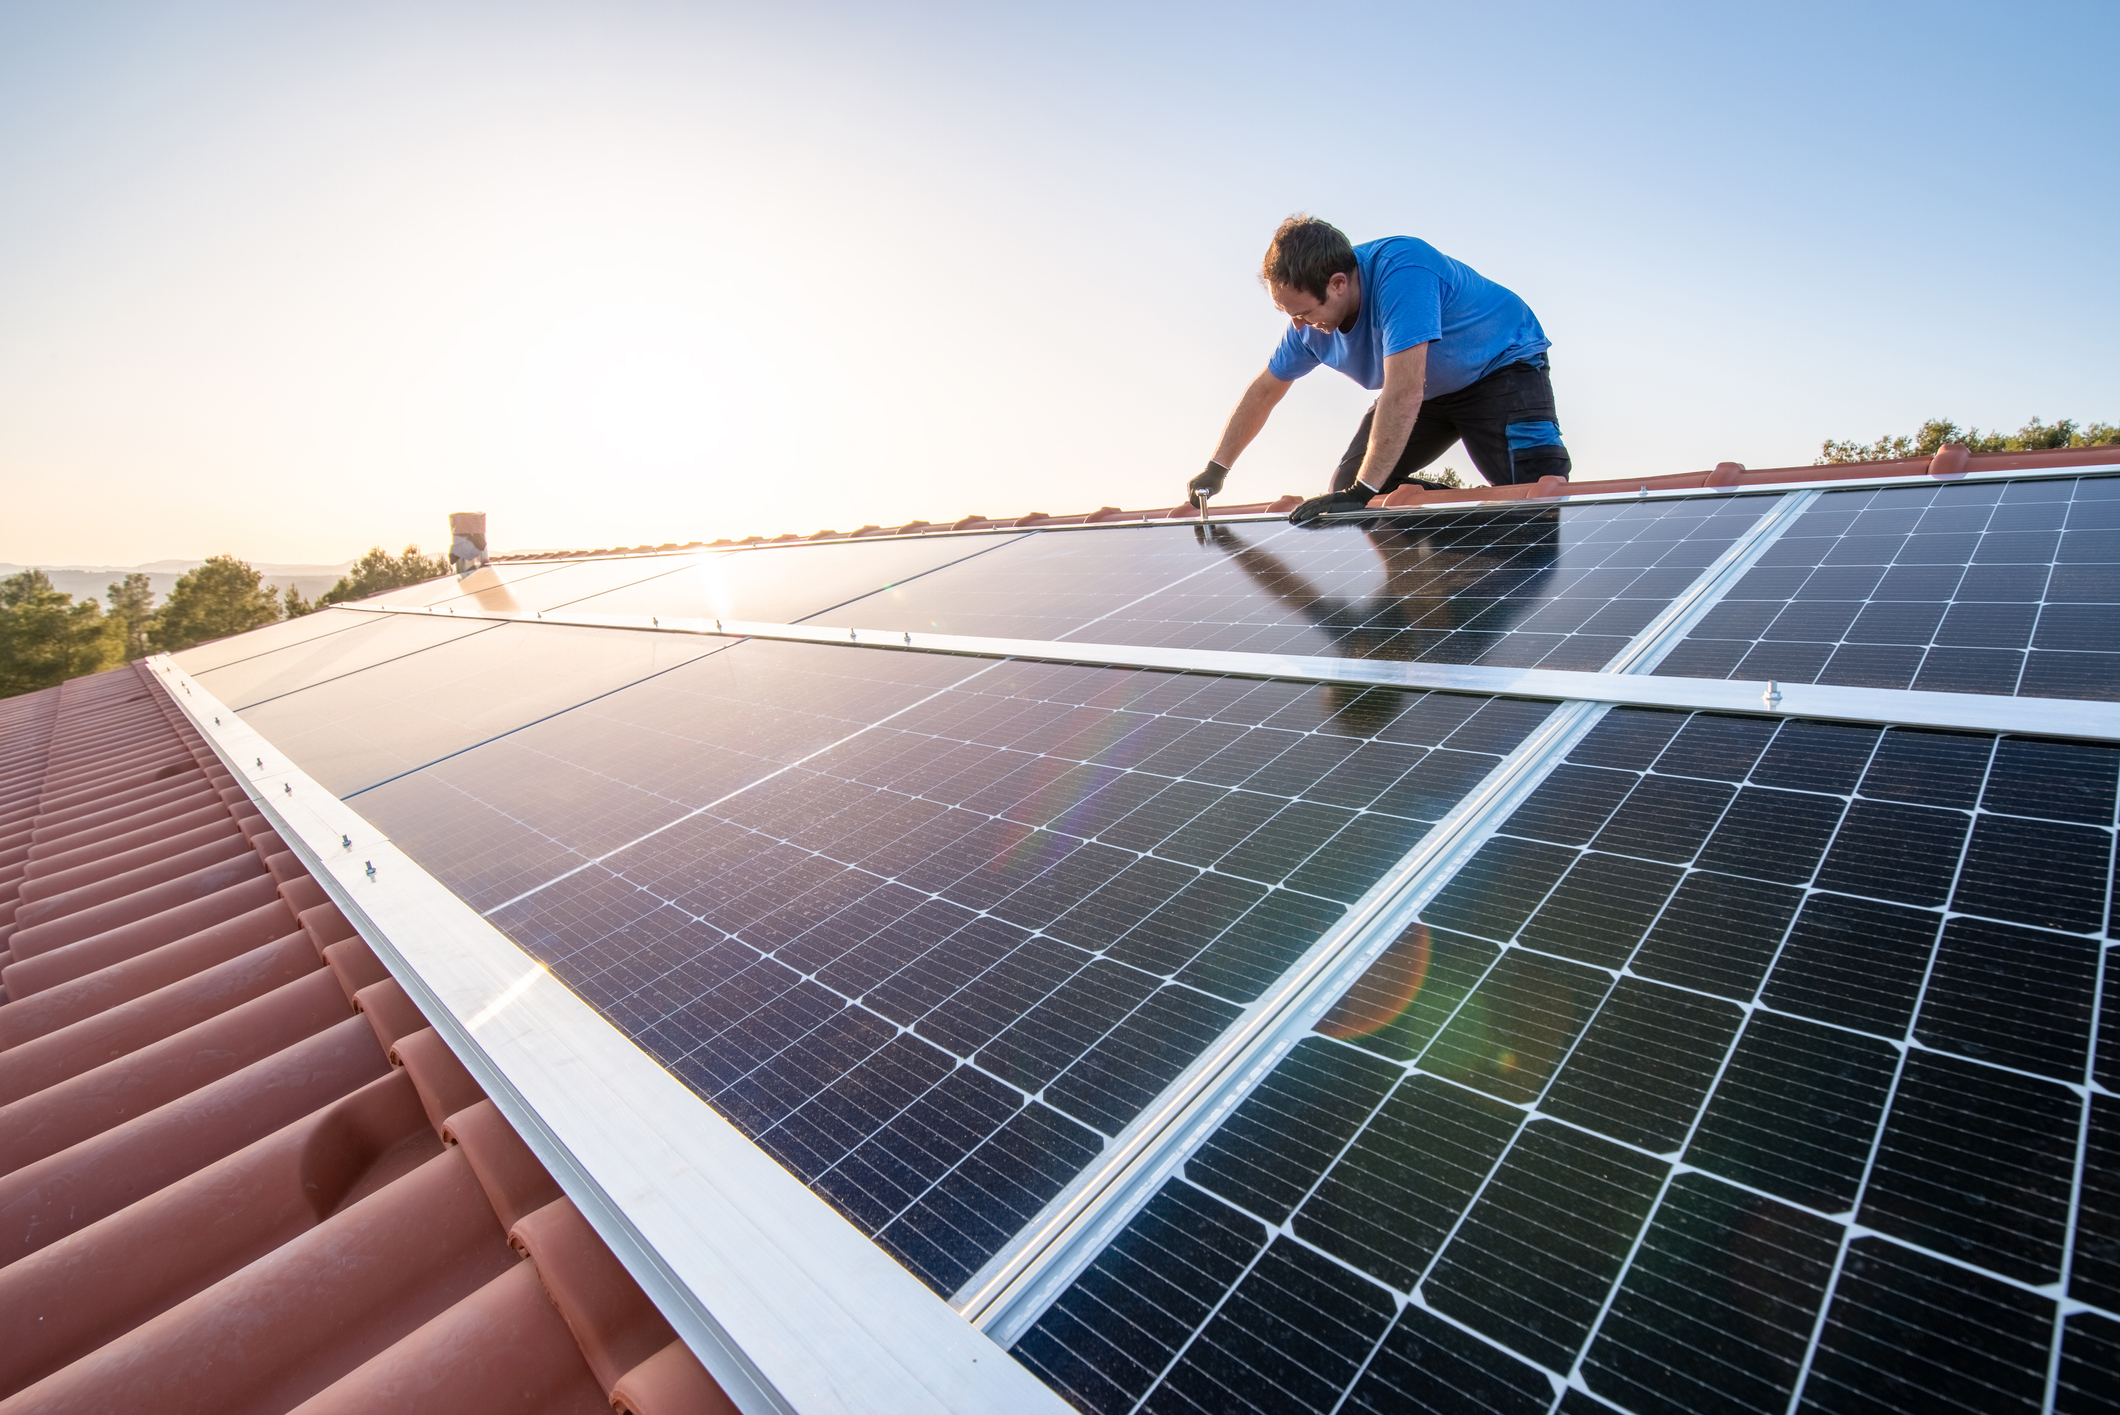 A man installs solar panels on the roof of a house.